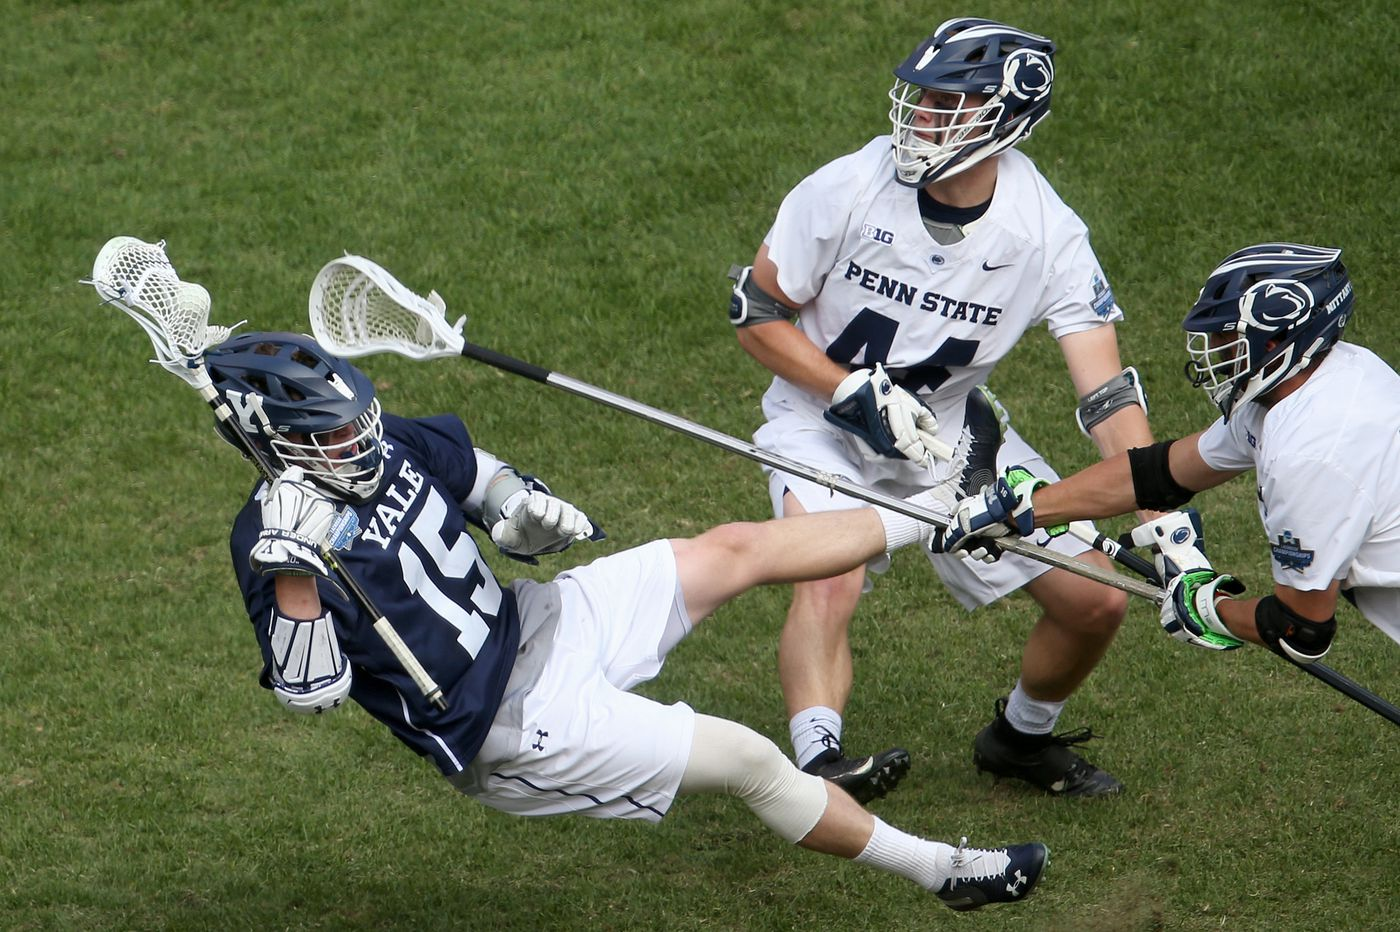 Yale beats Penn State to earn second straight NCAA Division I lacrosse championship appearance